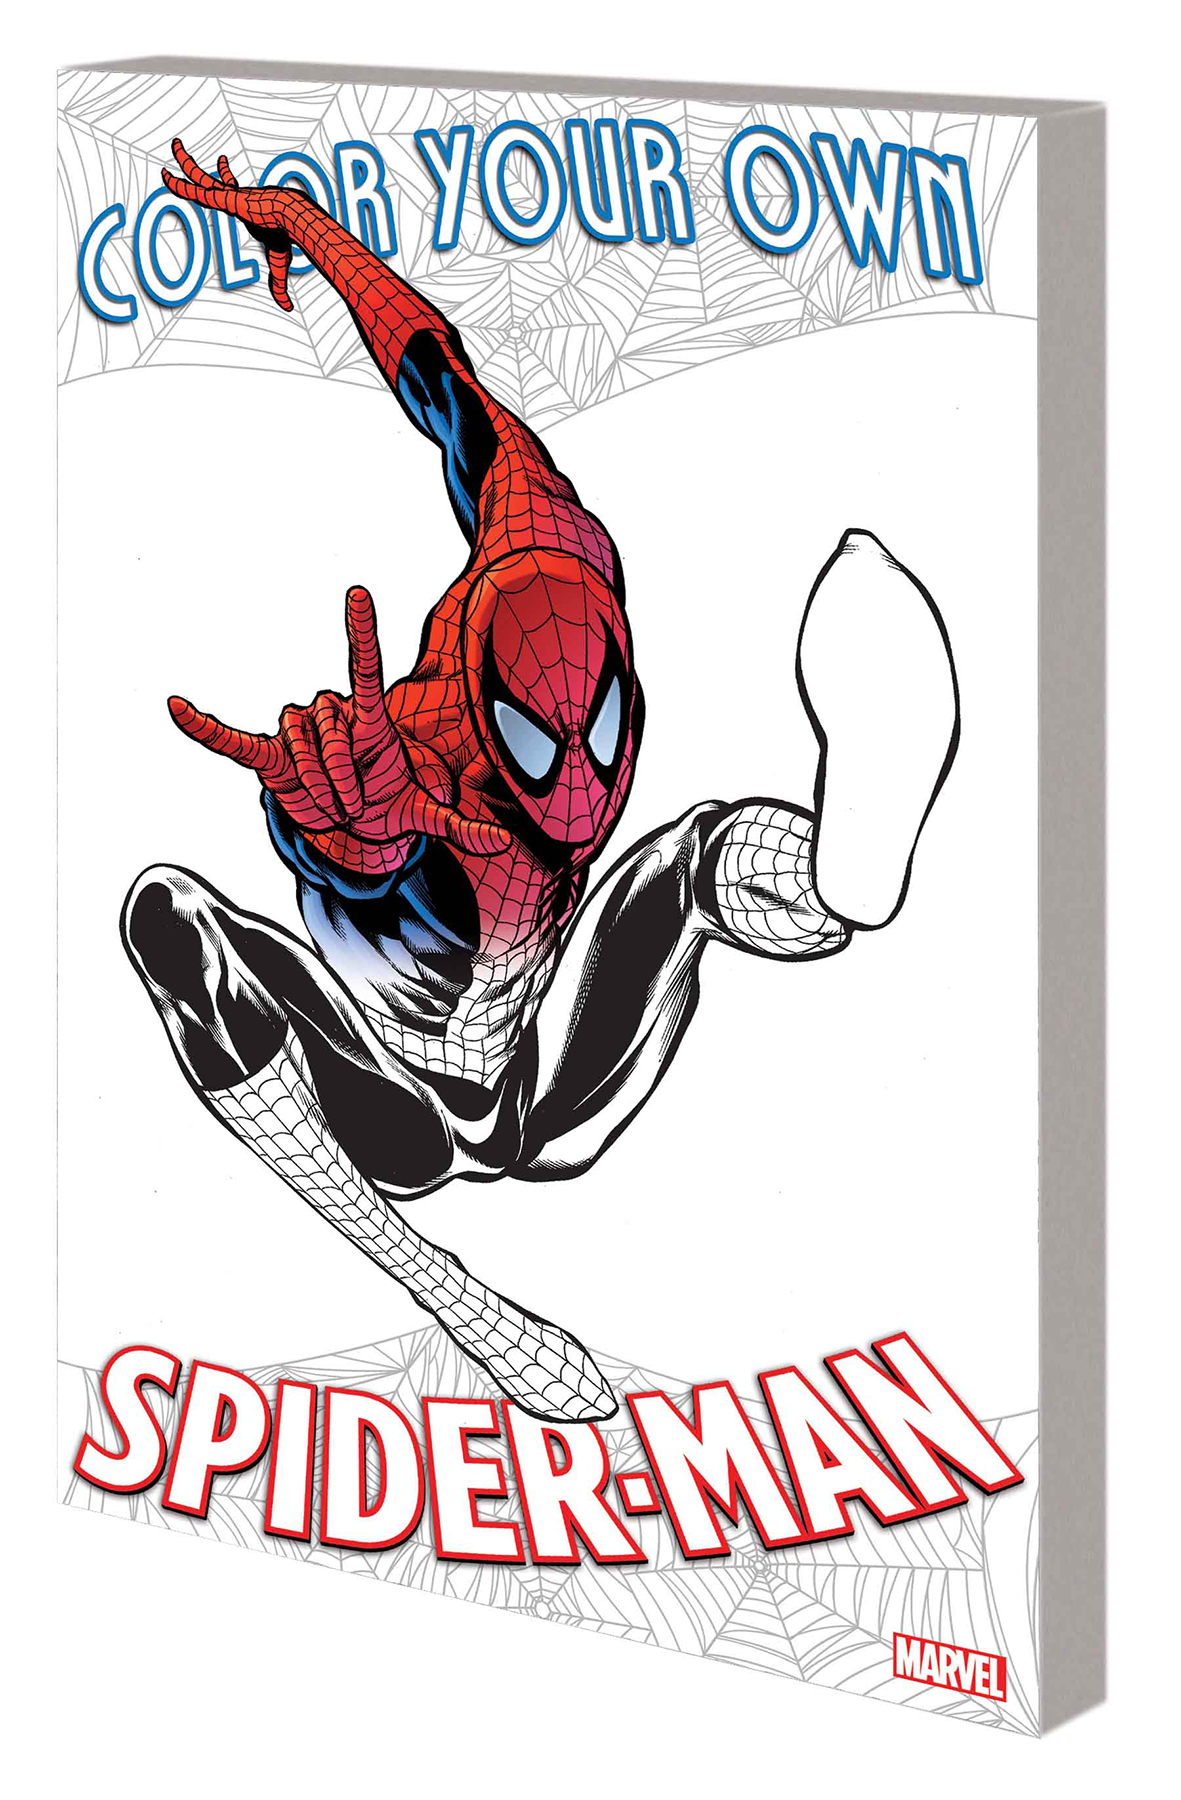 COLOR YOUR OWN SPIDER-MAN TP